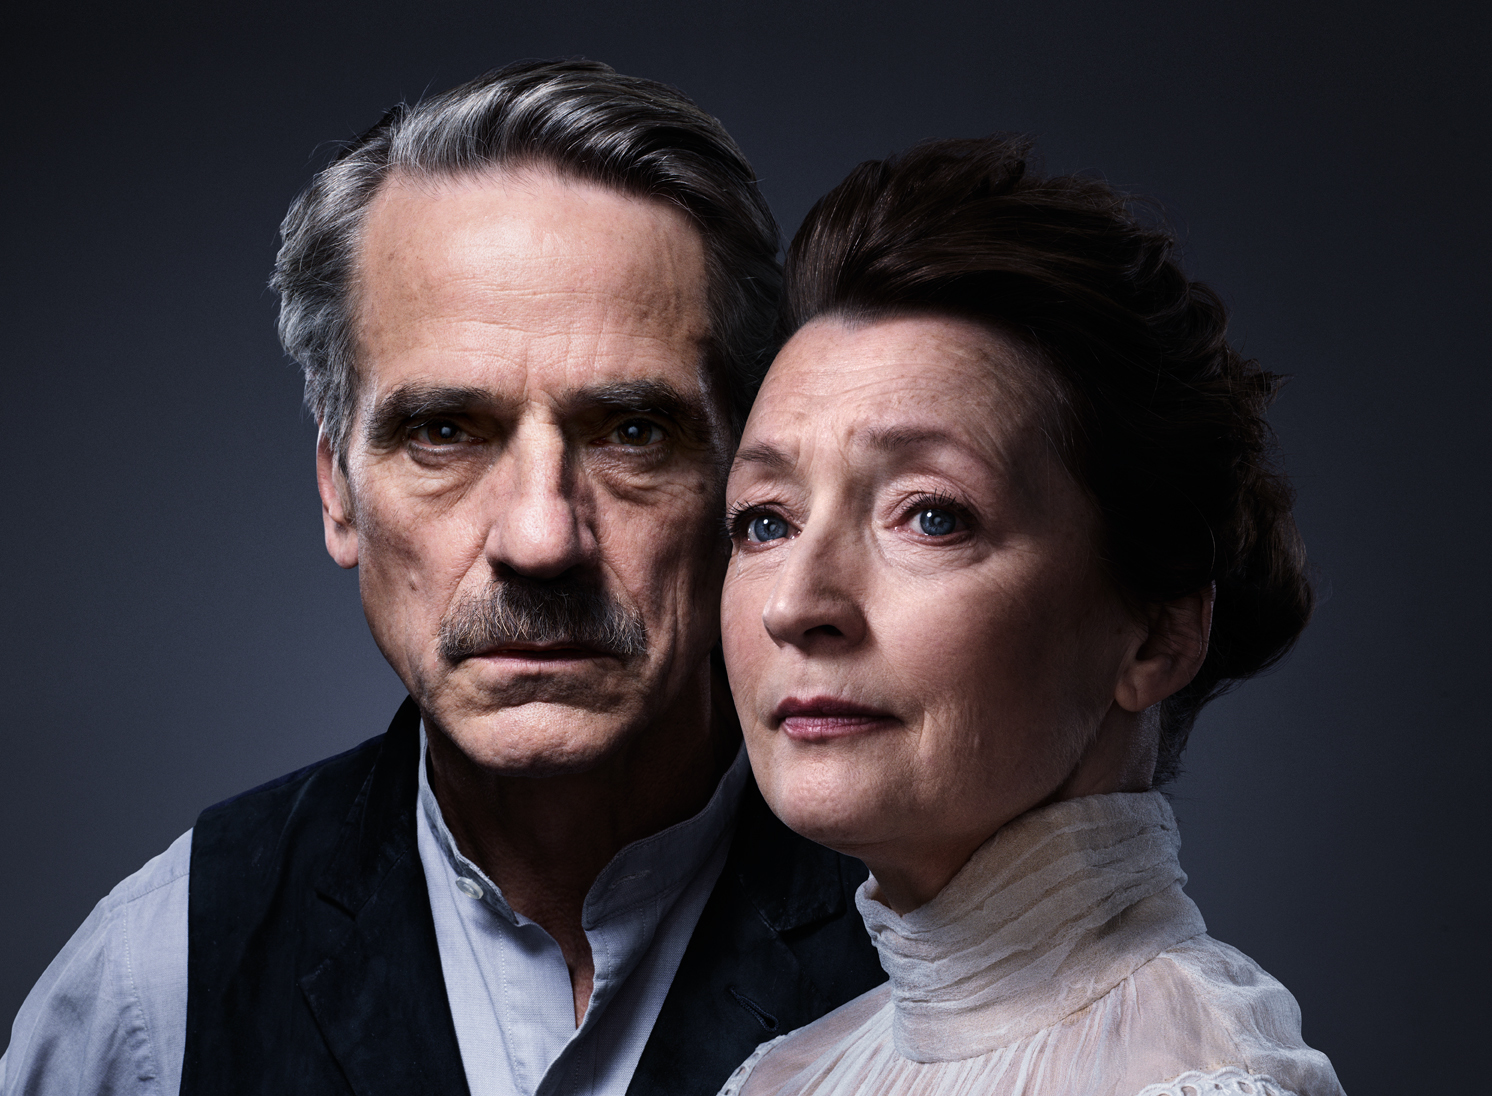 Jeremy Irons and Lesley Manville on 'Long Day's Journey Into Night'